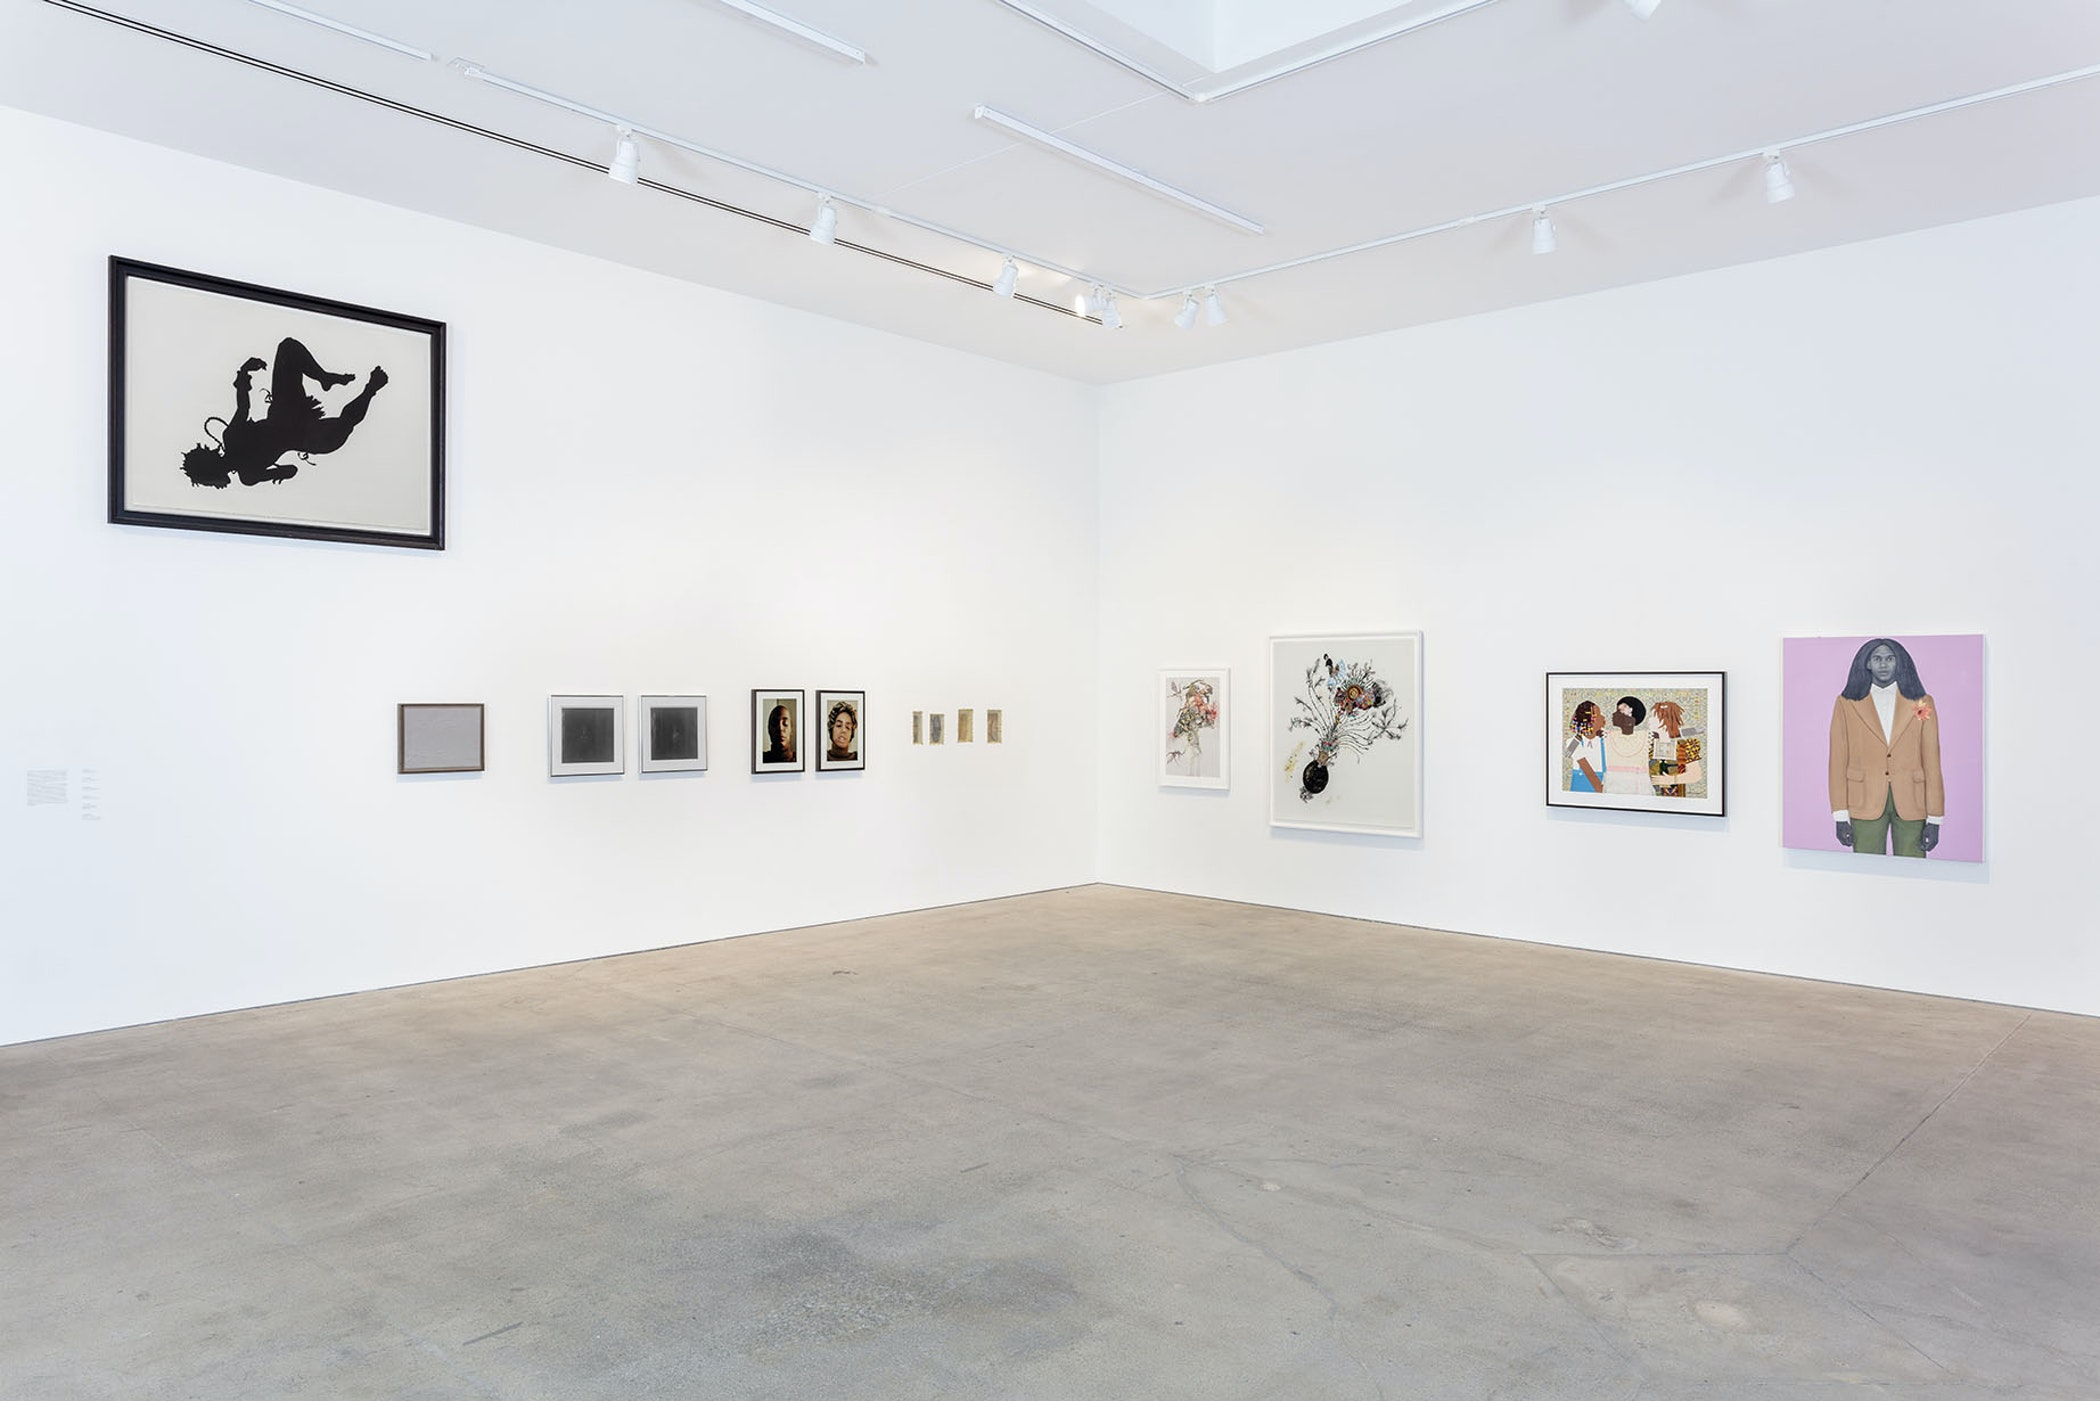 Installation view of Collective Constellation: Selections from The Eileen Harris Norton Collection at Art + Practice. 08 February 2020 - 02 January 2021. Photo: Charles White.